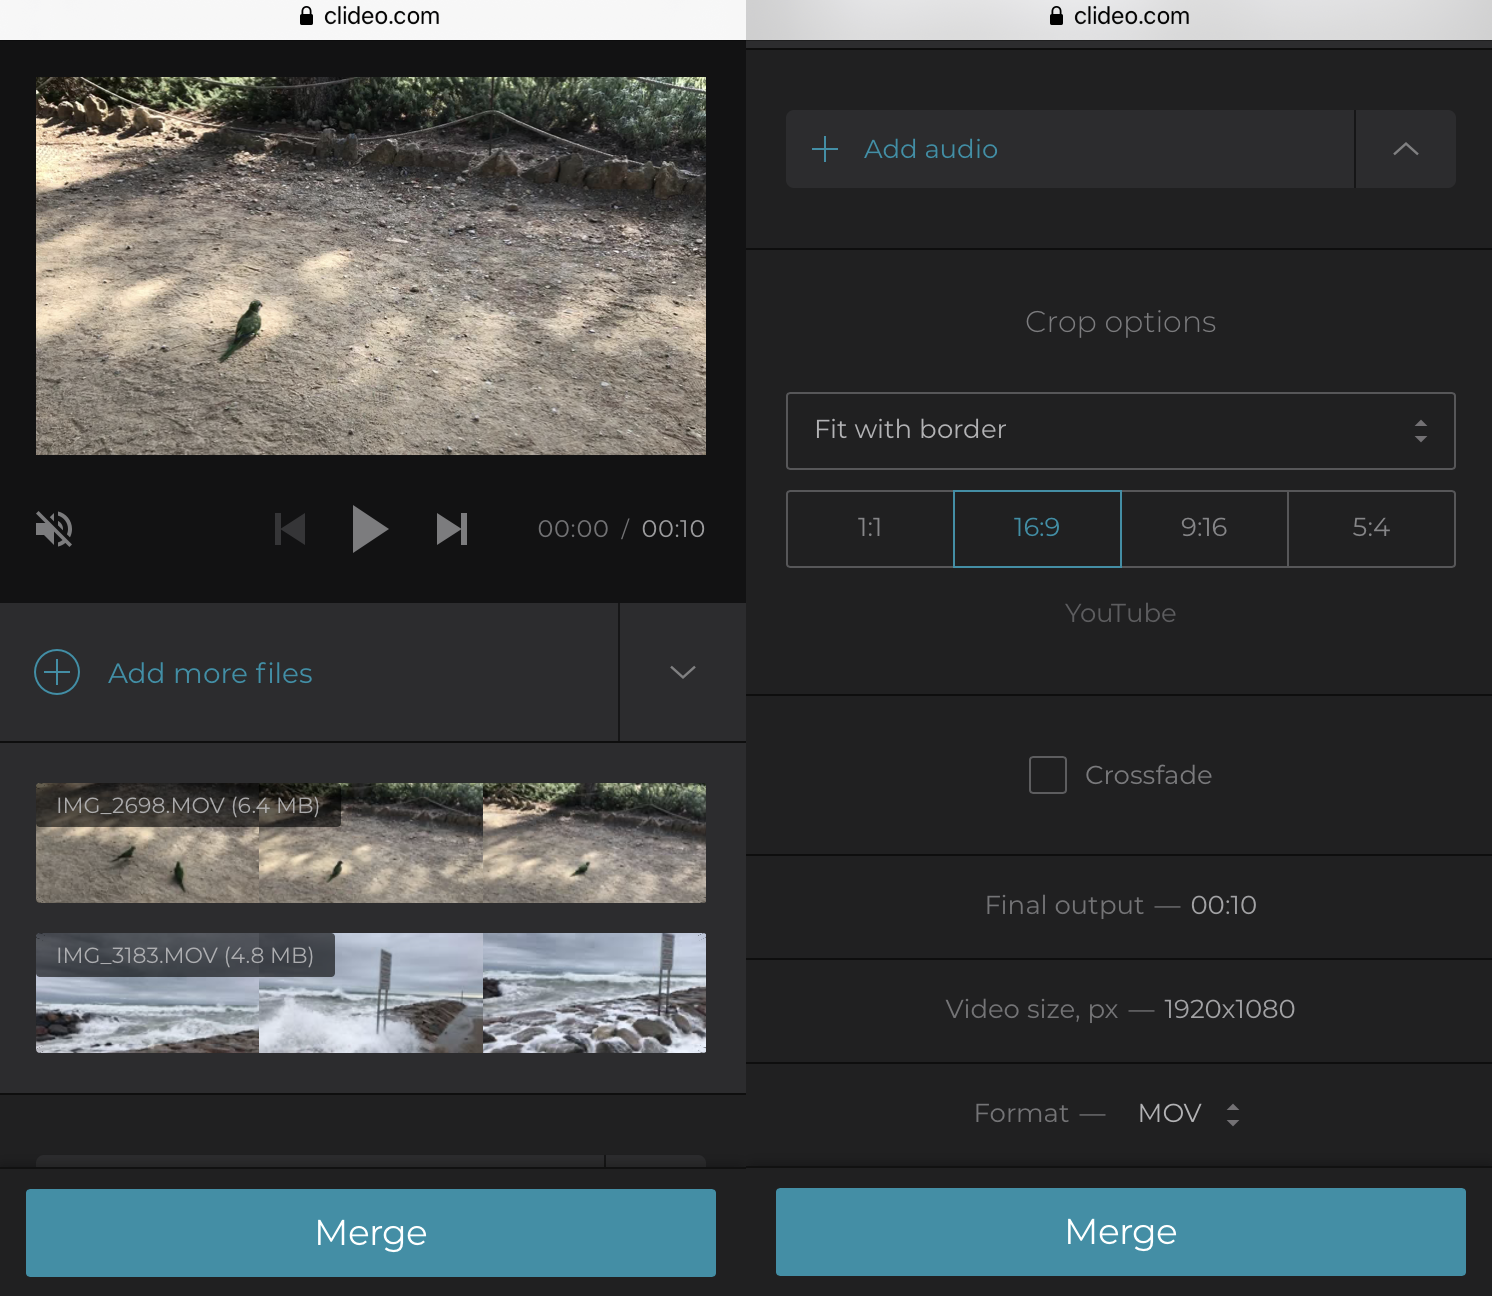 Combine videos on iPhone by rearranging their order